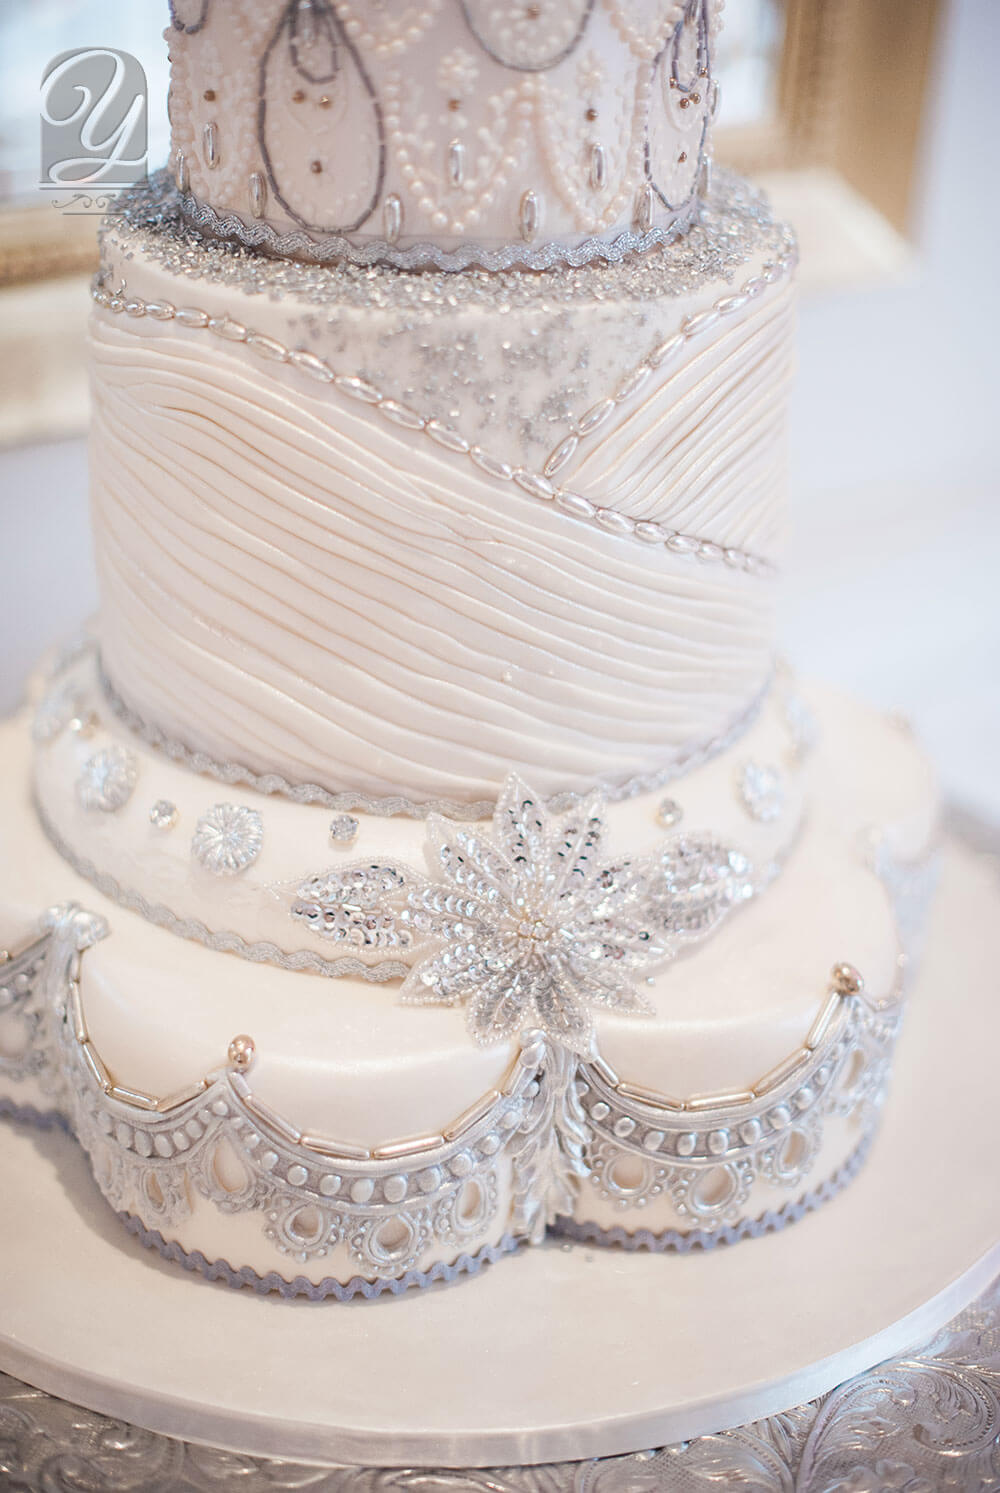 The Alexandria Chic a truly unique grand 5 tier centrepiece designer wedding cake from Unique Cakes, by Yevnig. A stunning combination of diamonds, silver jewellery and delicate lacework.